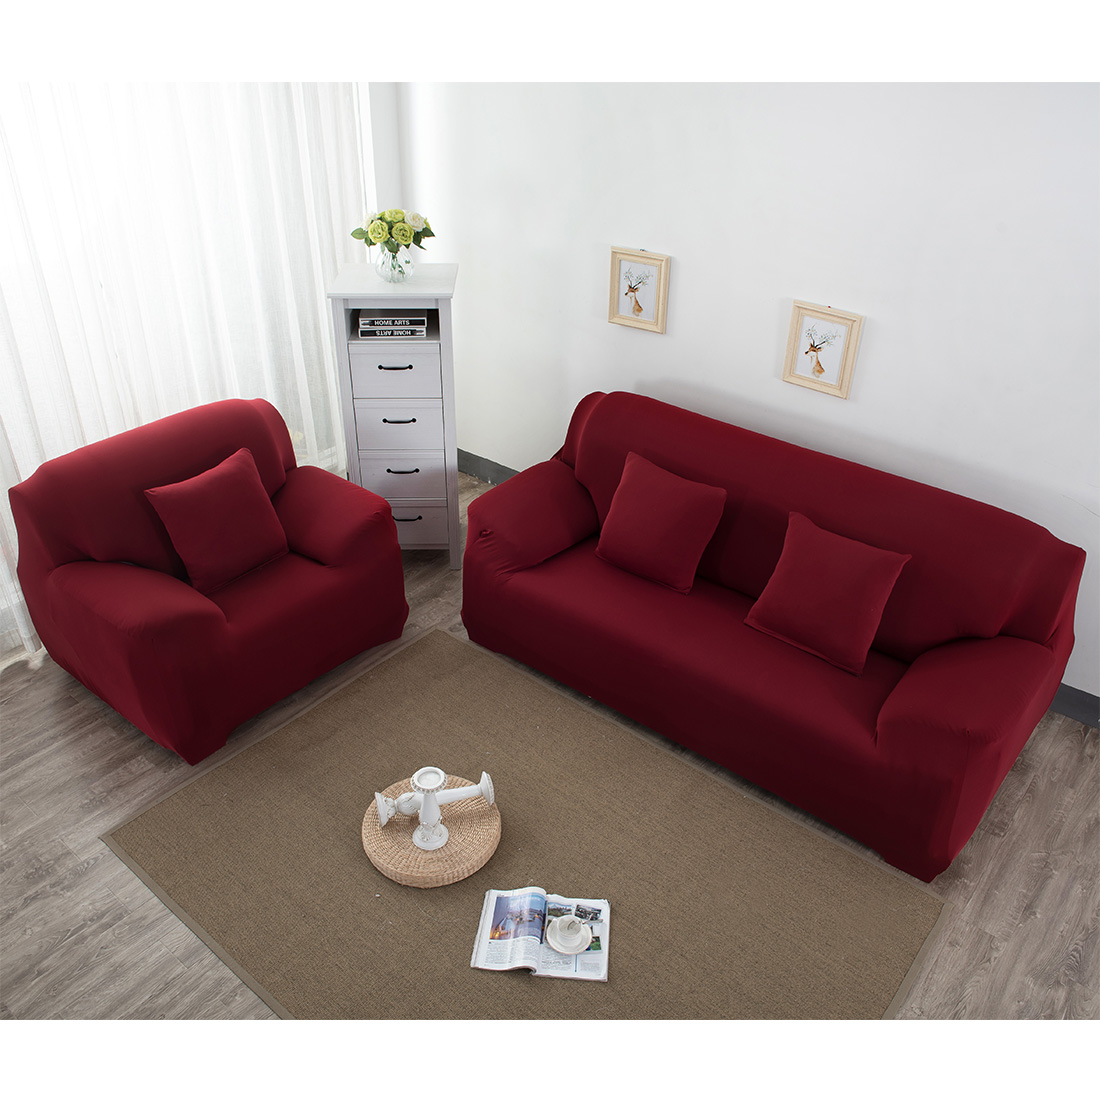 Two Seater Elastic Stretch Universal Sofa Covers Sectional